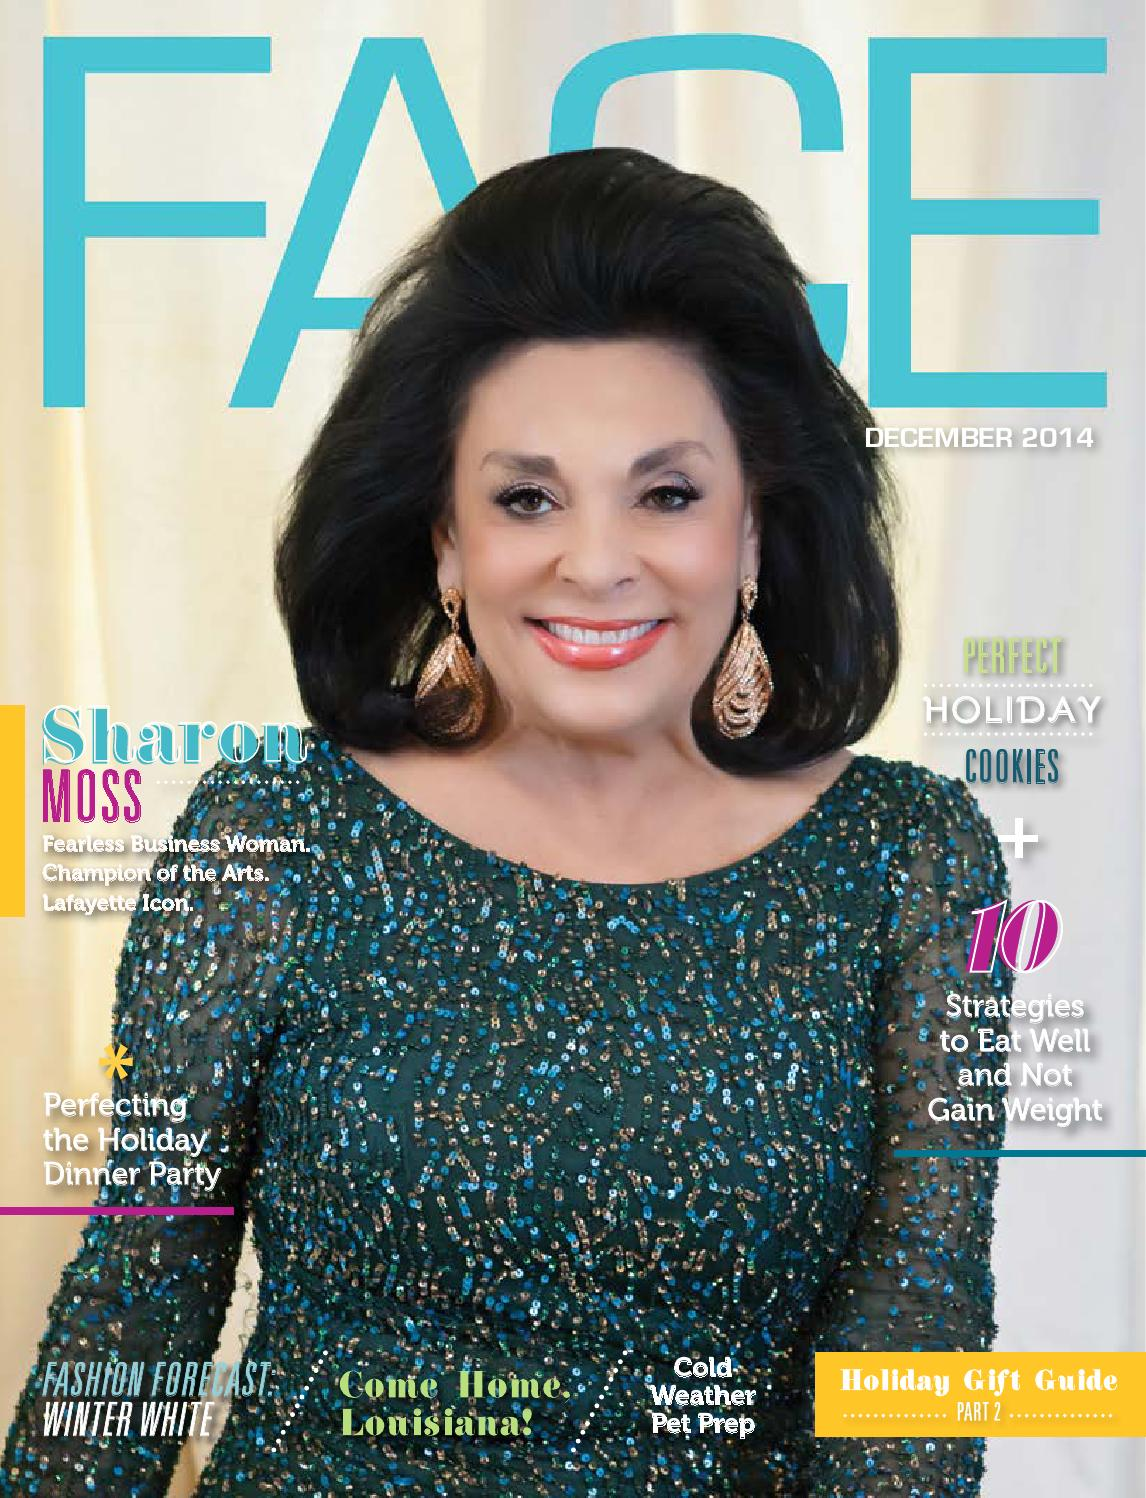 FACE Magazine December 2014 by FACE Magazine - issuu 988c60dbcd7cf